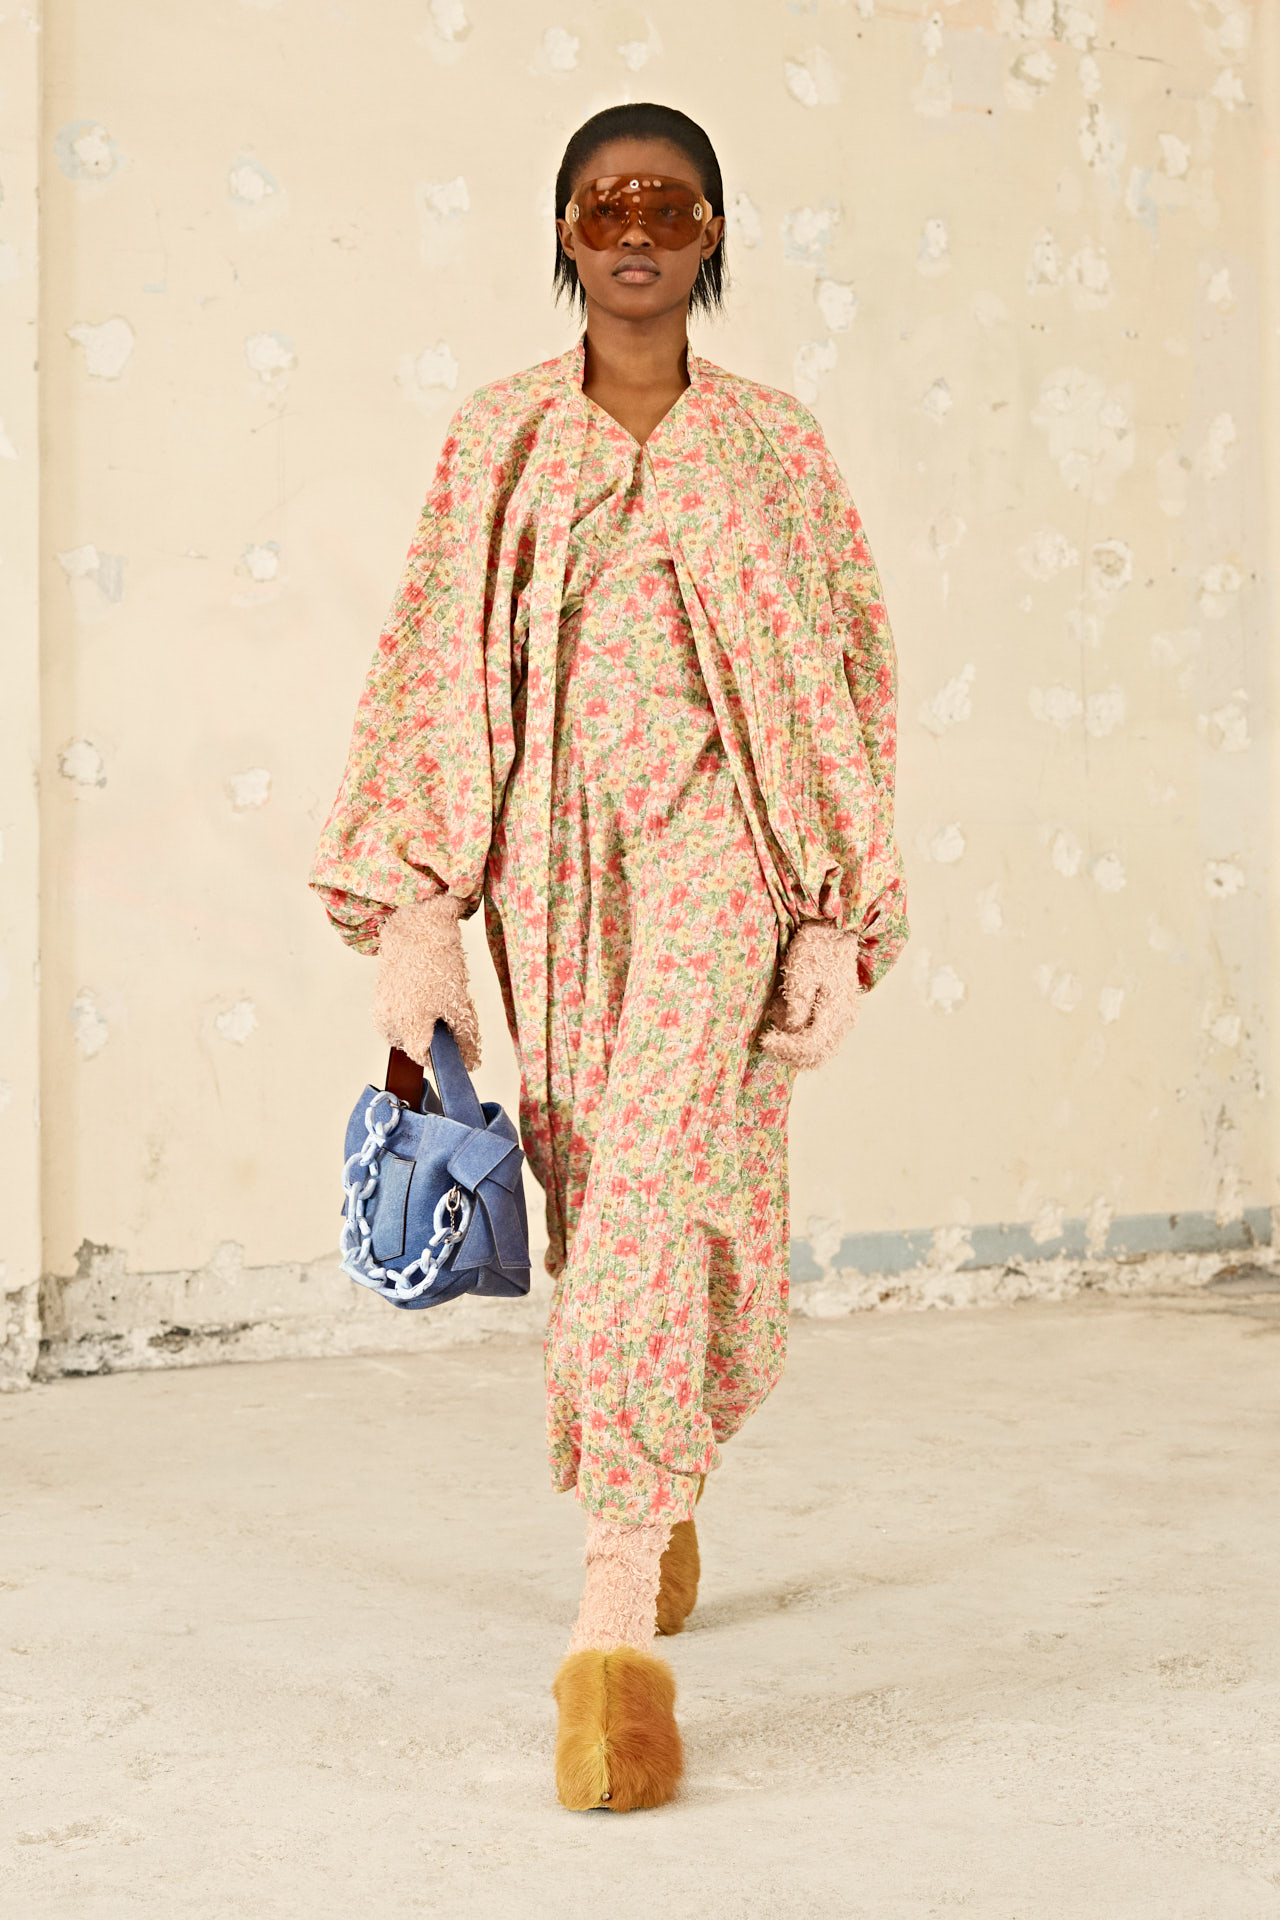 Look Fall/Winter 2021, image 22